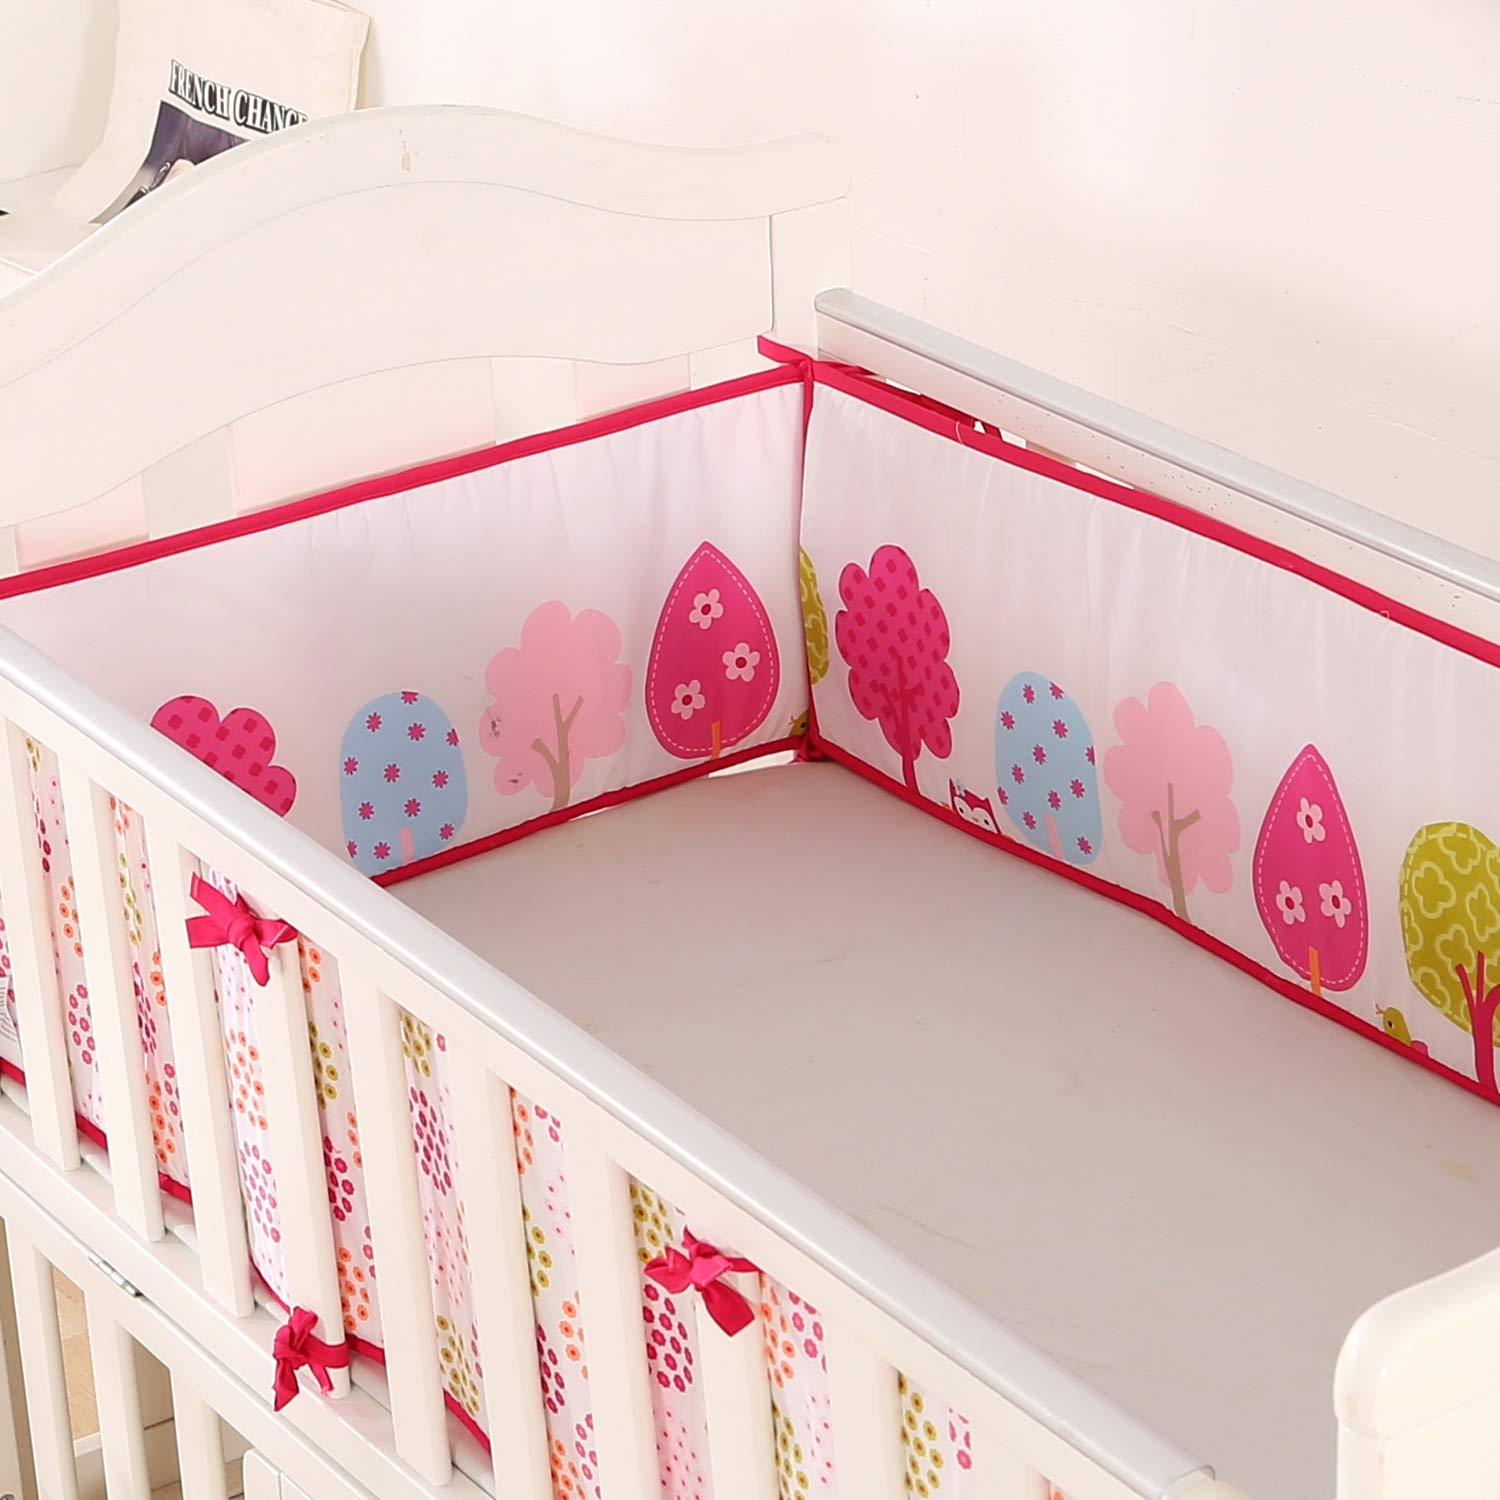 SOLID PINK NURSERY BUMPER 420 cm LONG ALL ROUND BUMPER TO FIT BABY COT BED